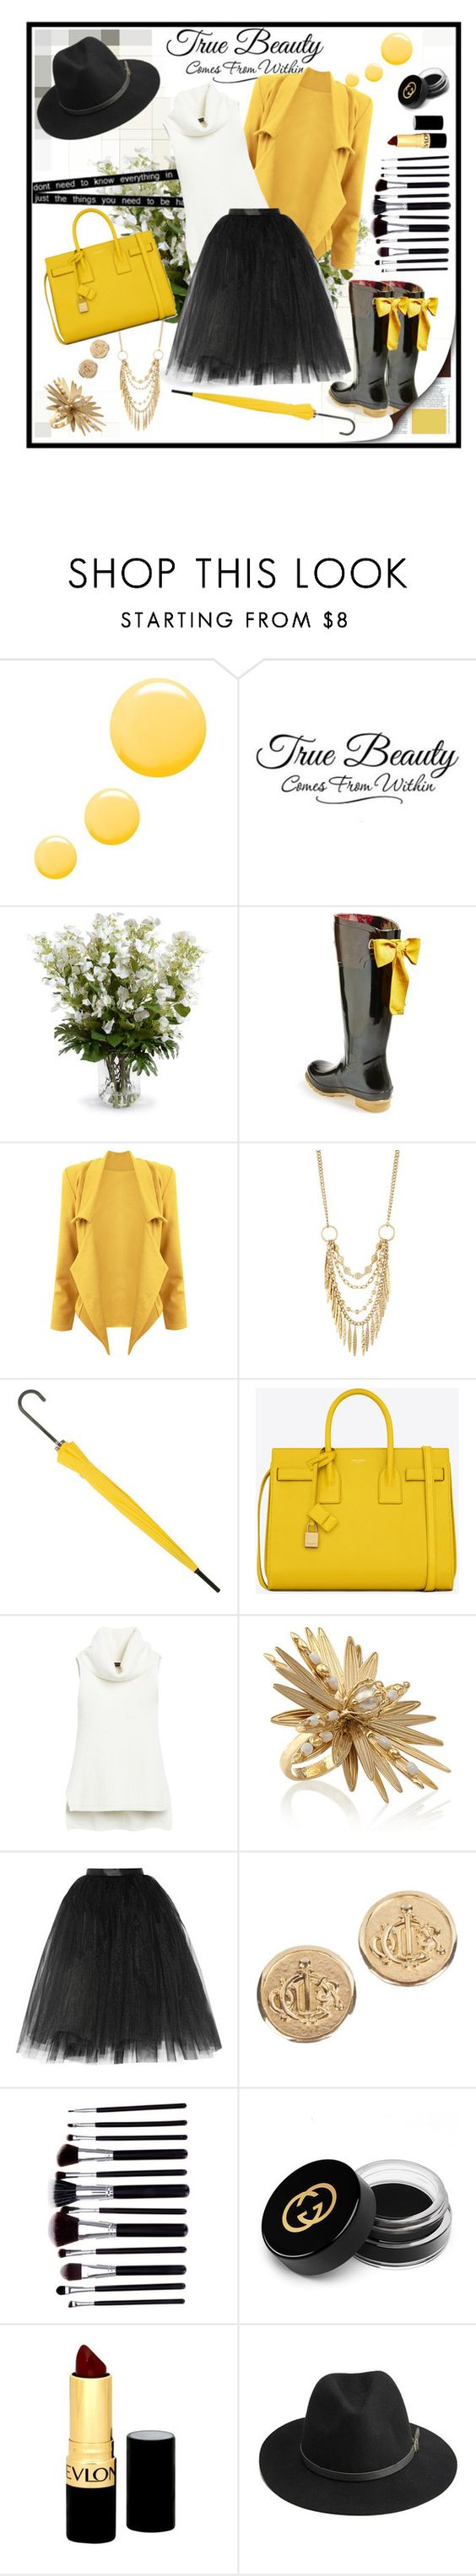 """Rainy day"" by ina-kis ❤ liked on Polyvore featuring Topshop, New Growth Designs, Joules, Panacea, Yves Saint Laurent, White House Black Market, Rosantica, Ballet Beautiful, Christian Dior and Gucci"